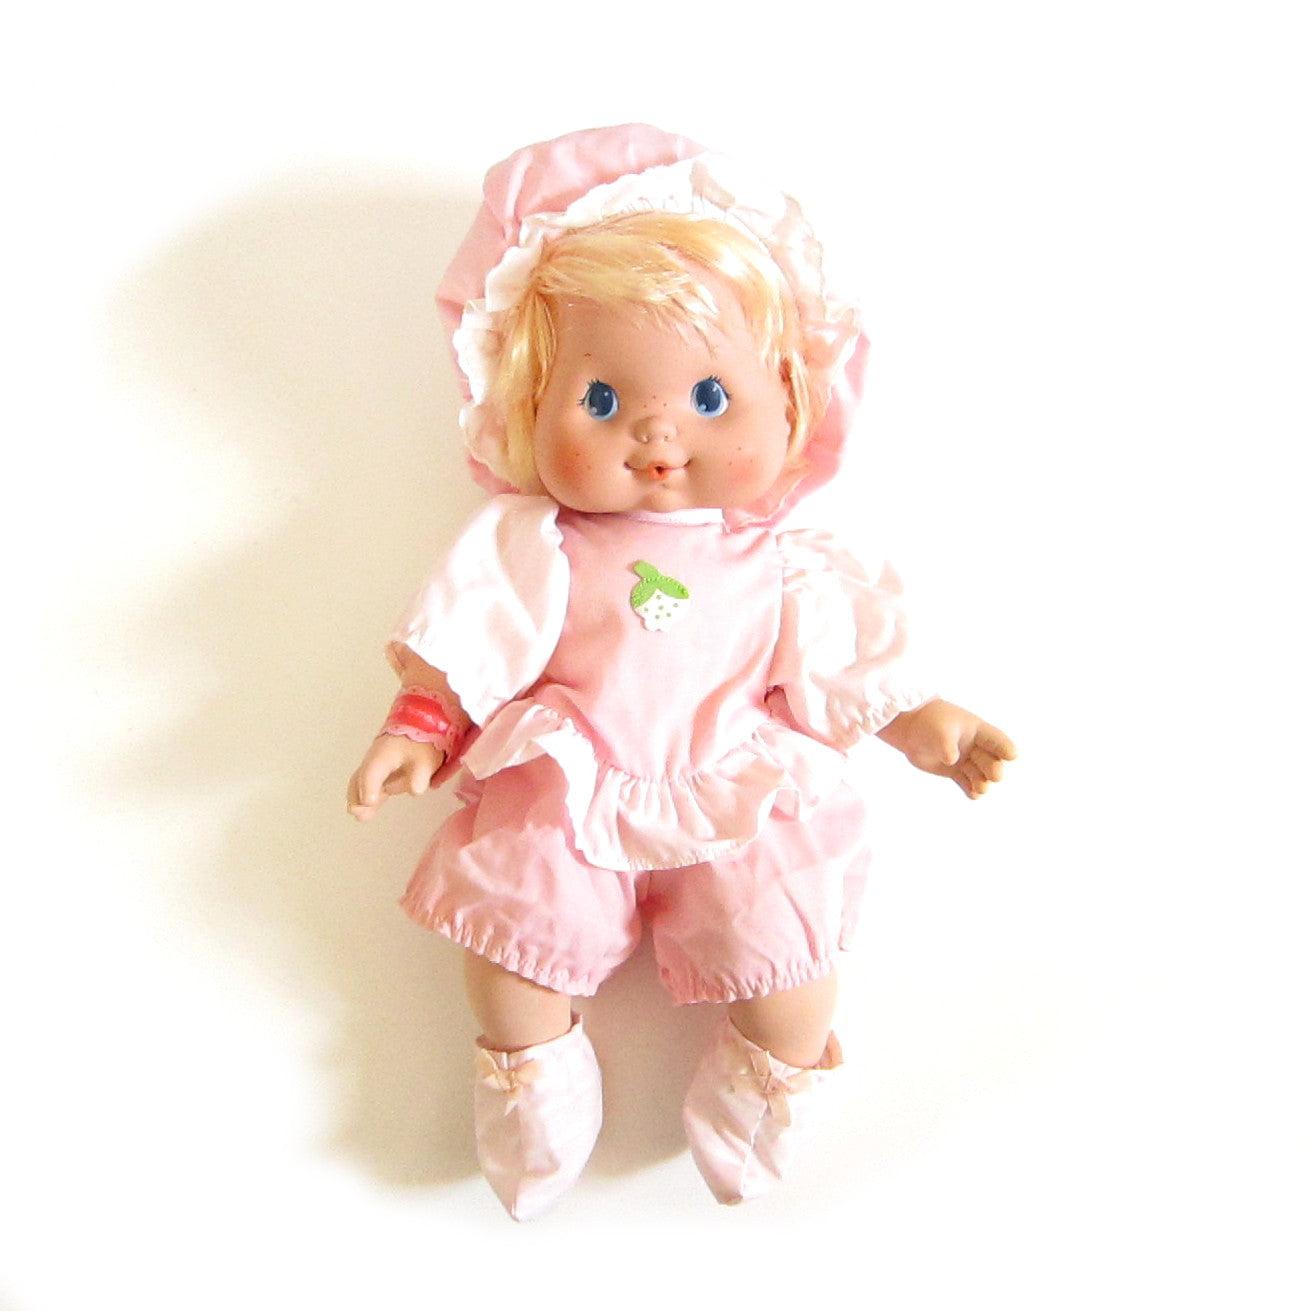 Strawberry Shortcake Baby Needs a Name Blow Kiss doll